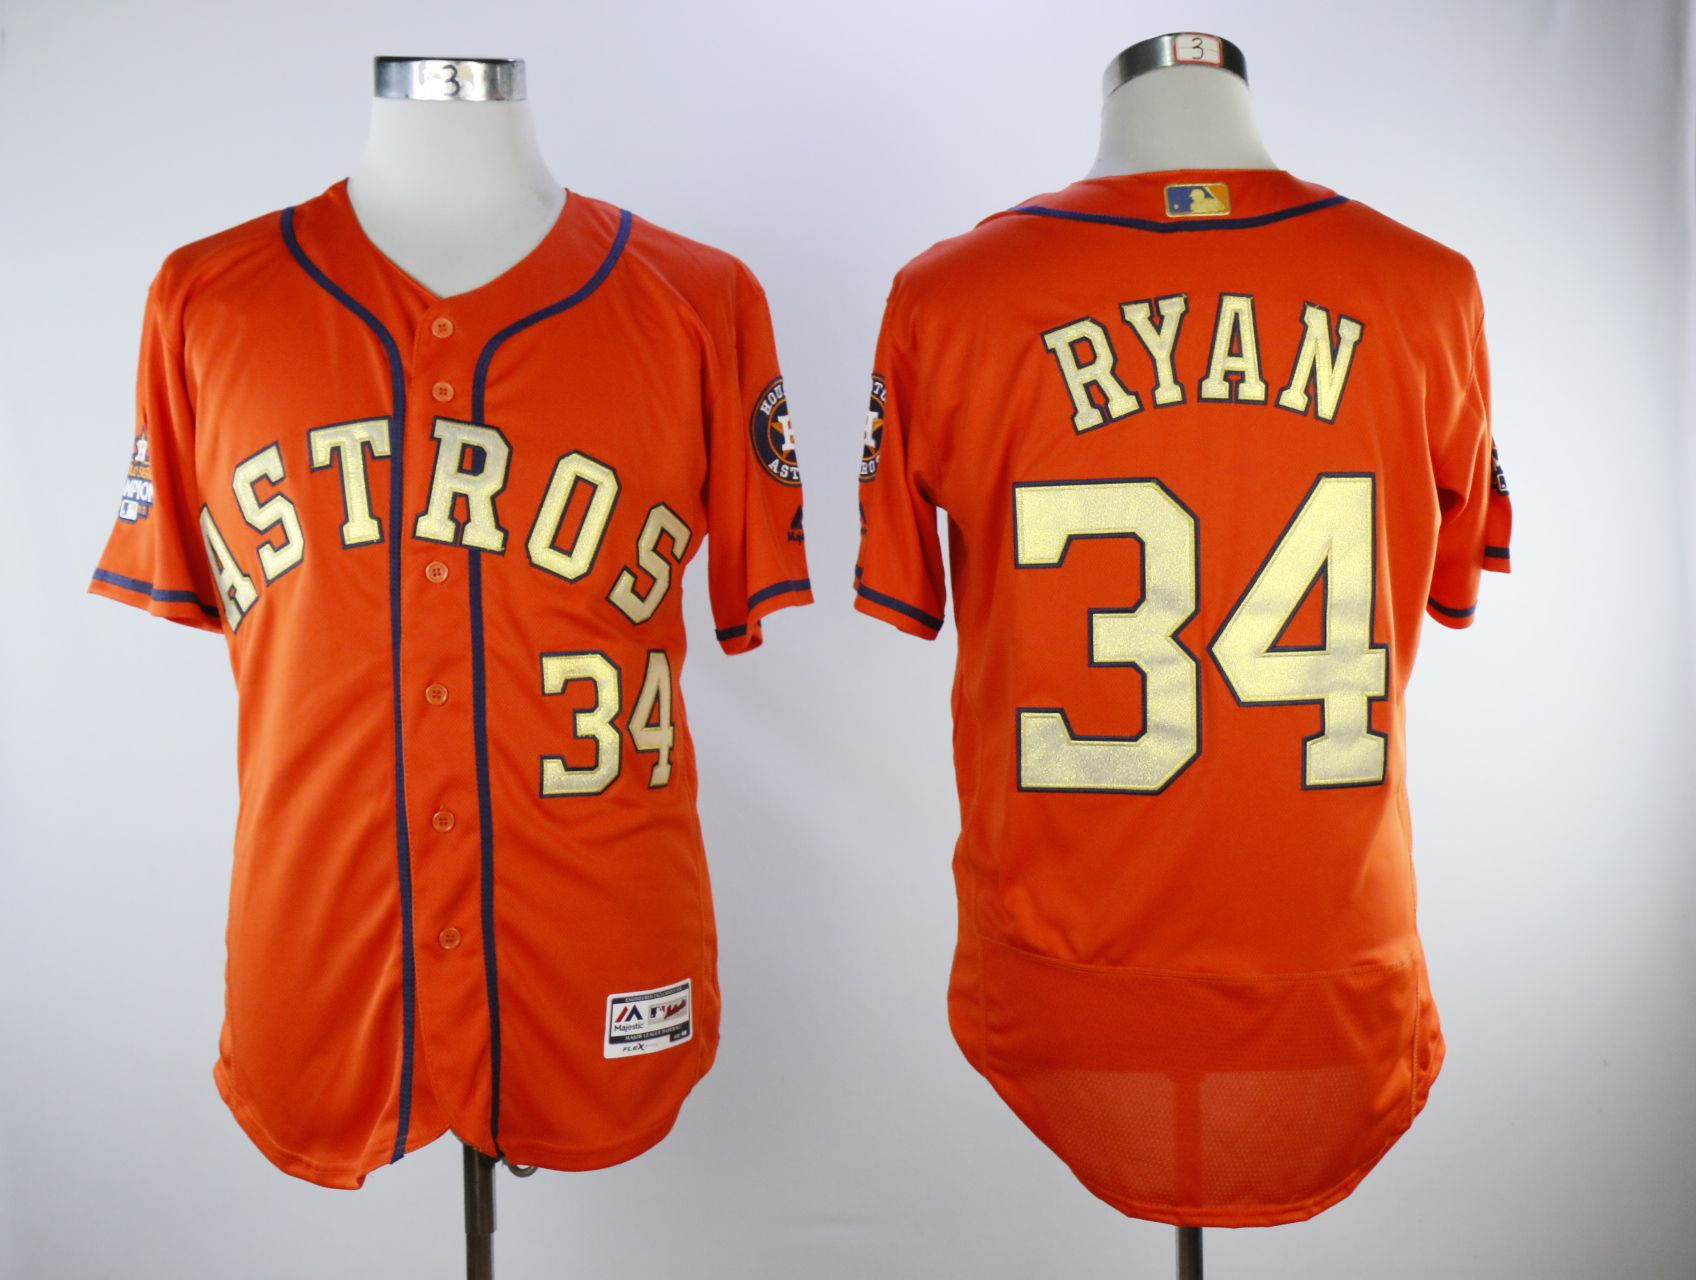 Men Houston Astros 34 Ryan Orange Elite Champion Edition MLB Jerseys